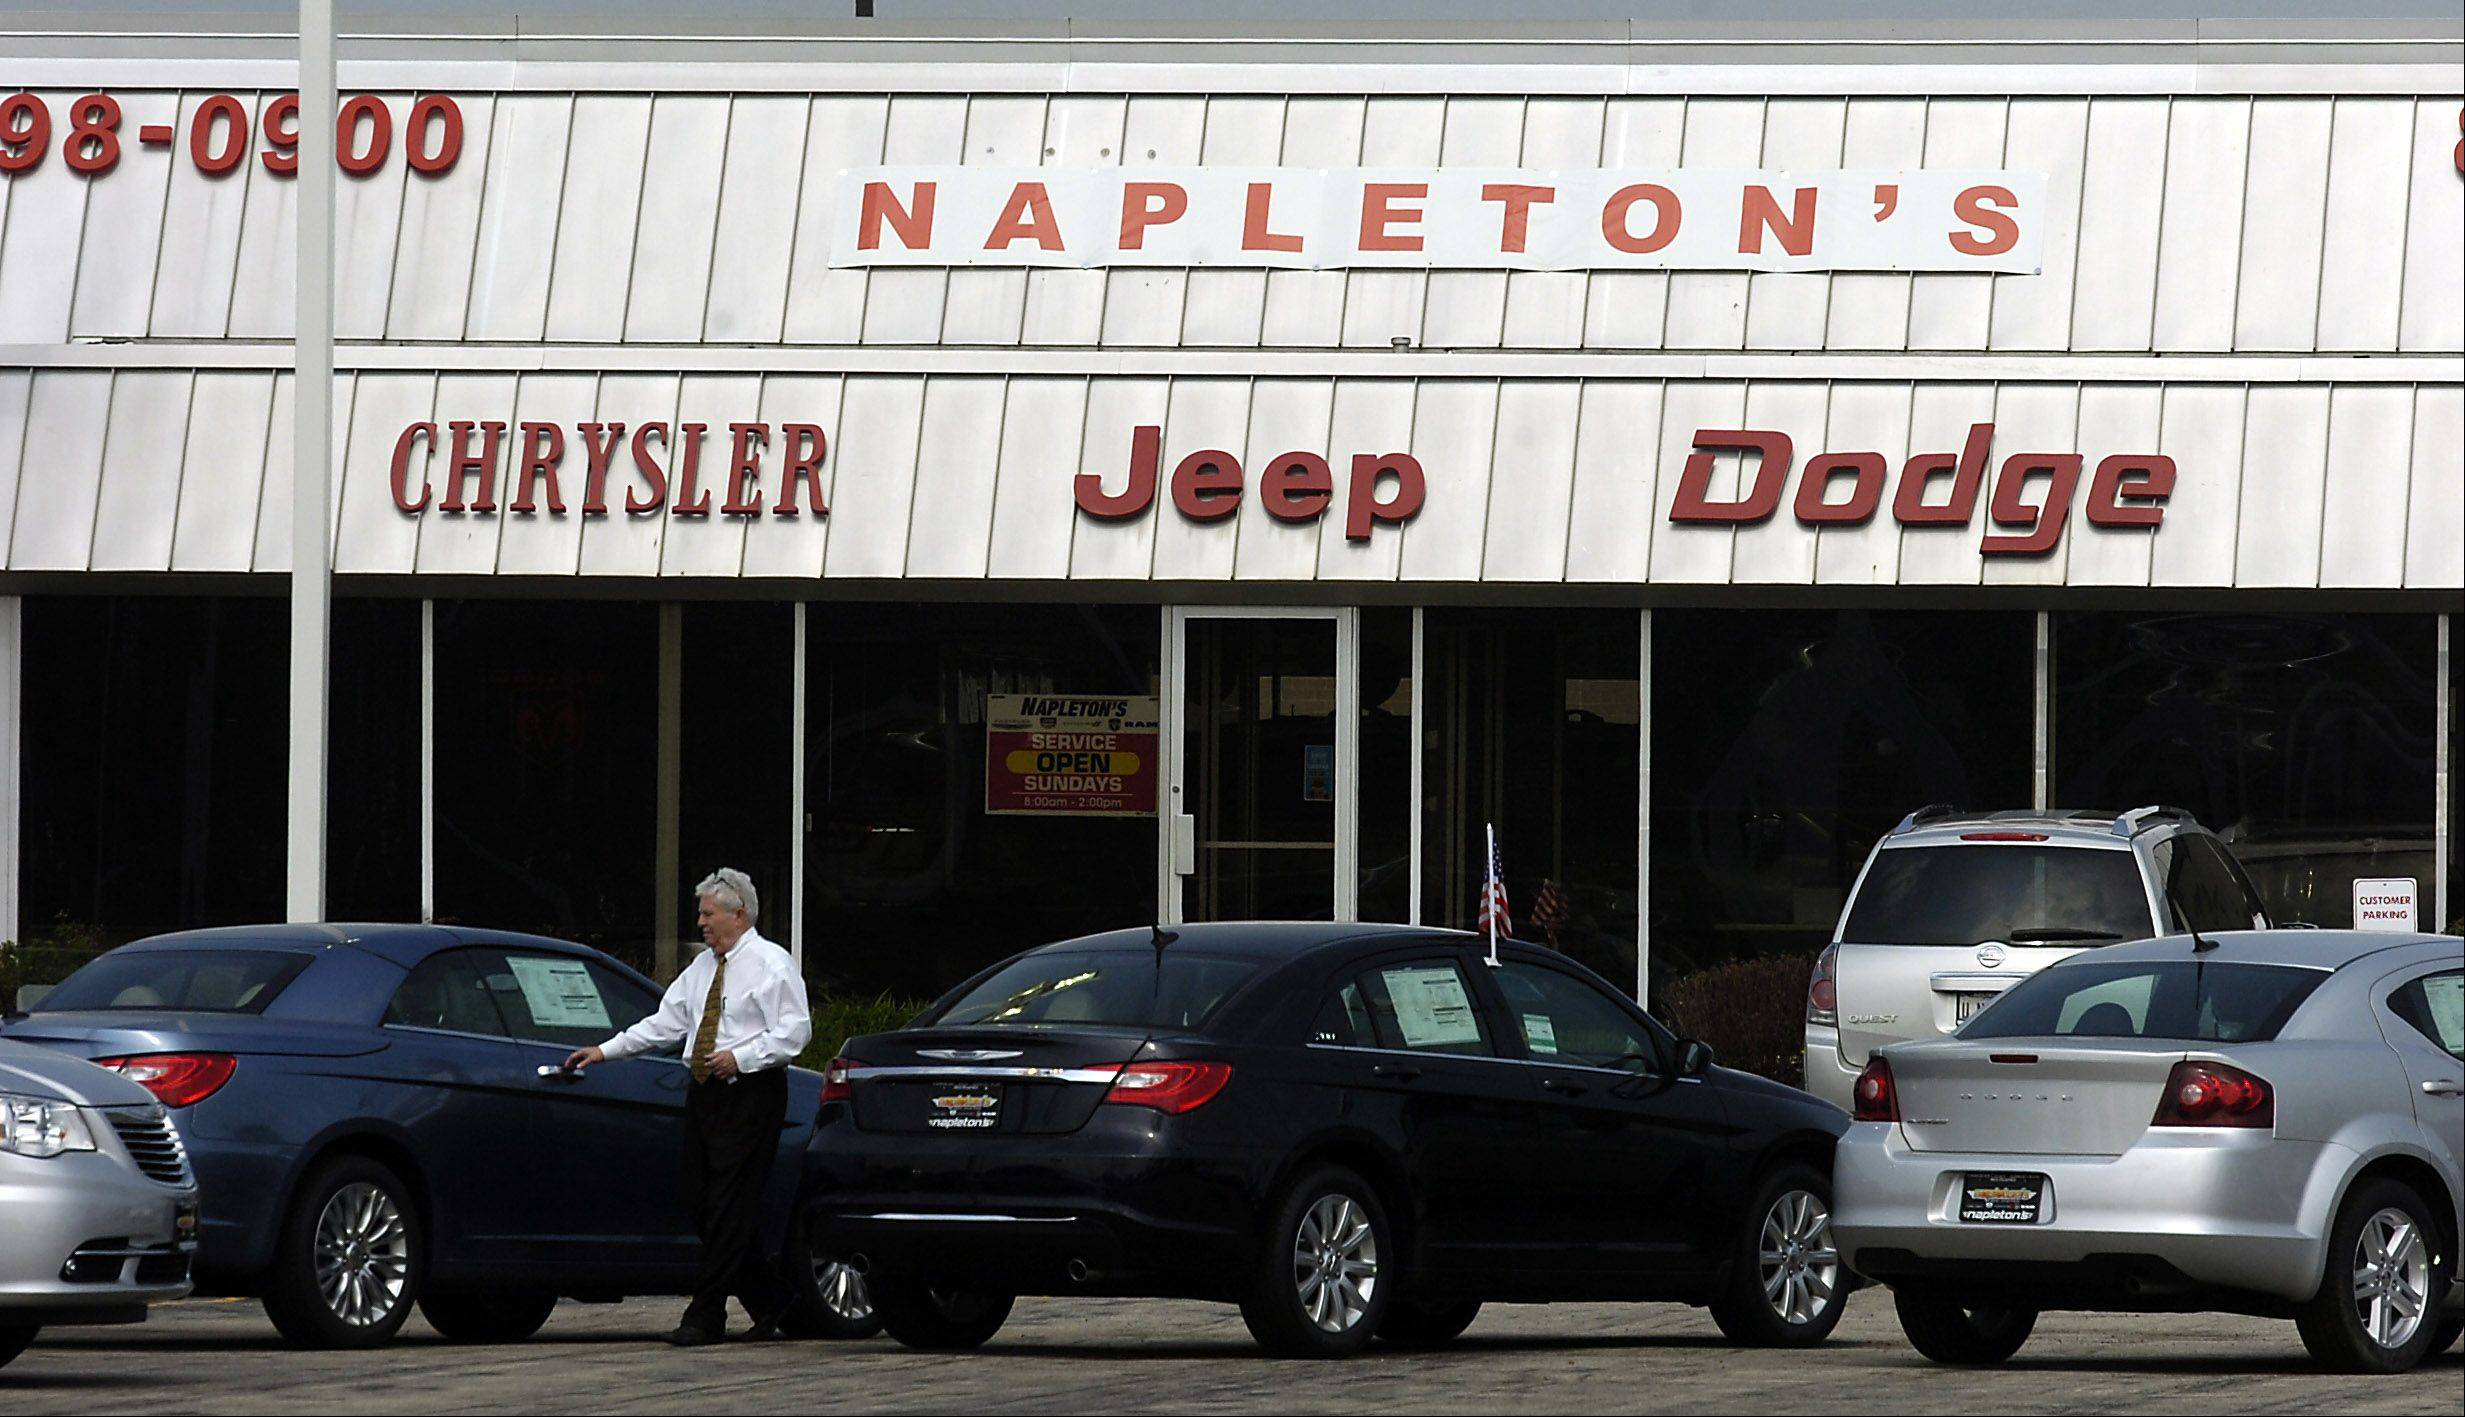 Napleton Chrysler Dodge Jeep Ram In Des Plaines Plans To Move To Dundee  Road In Arlington